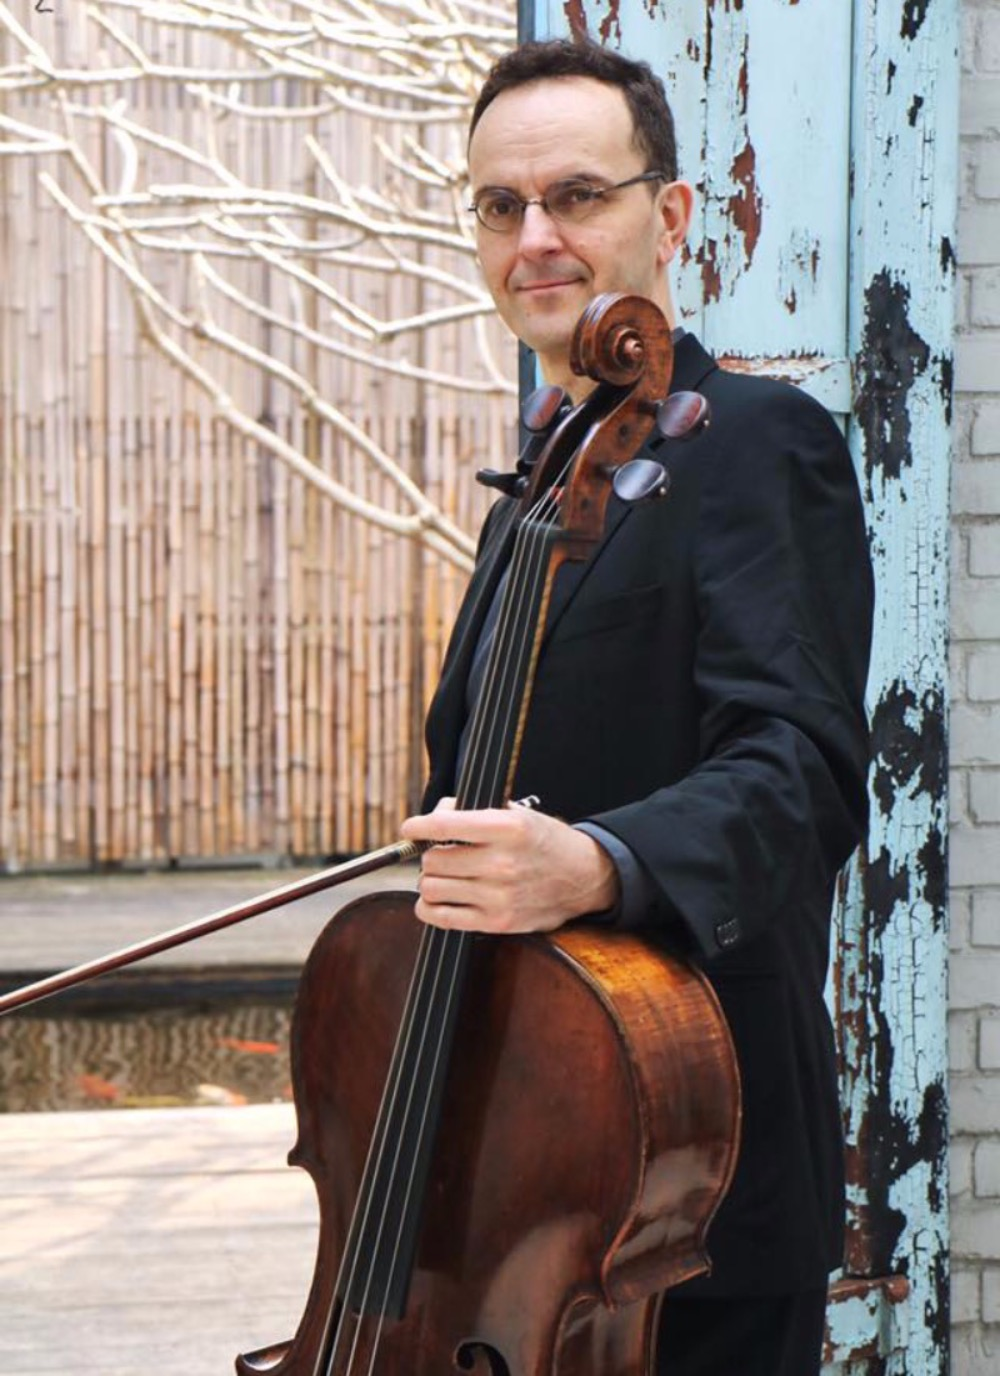 Tom Landschoot, Cello